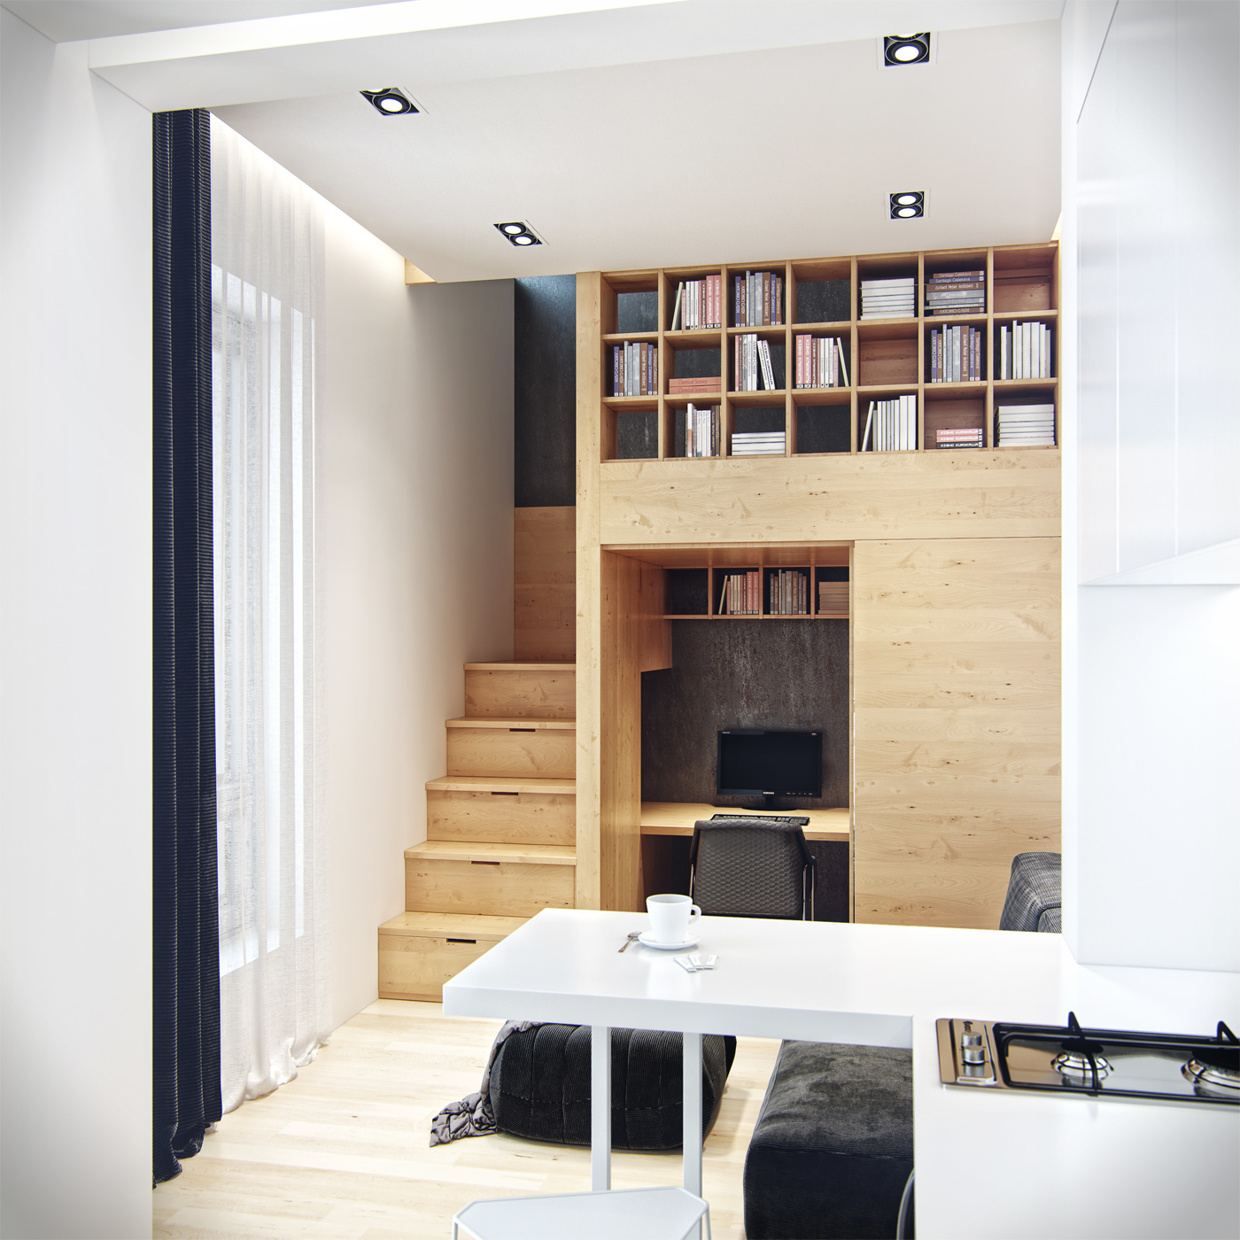 Tiny loft space apartment your no 1 source of Small loft apartment design